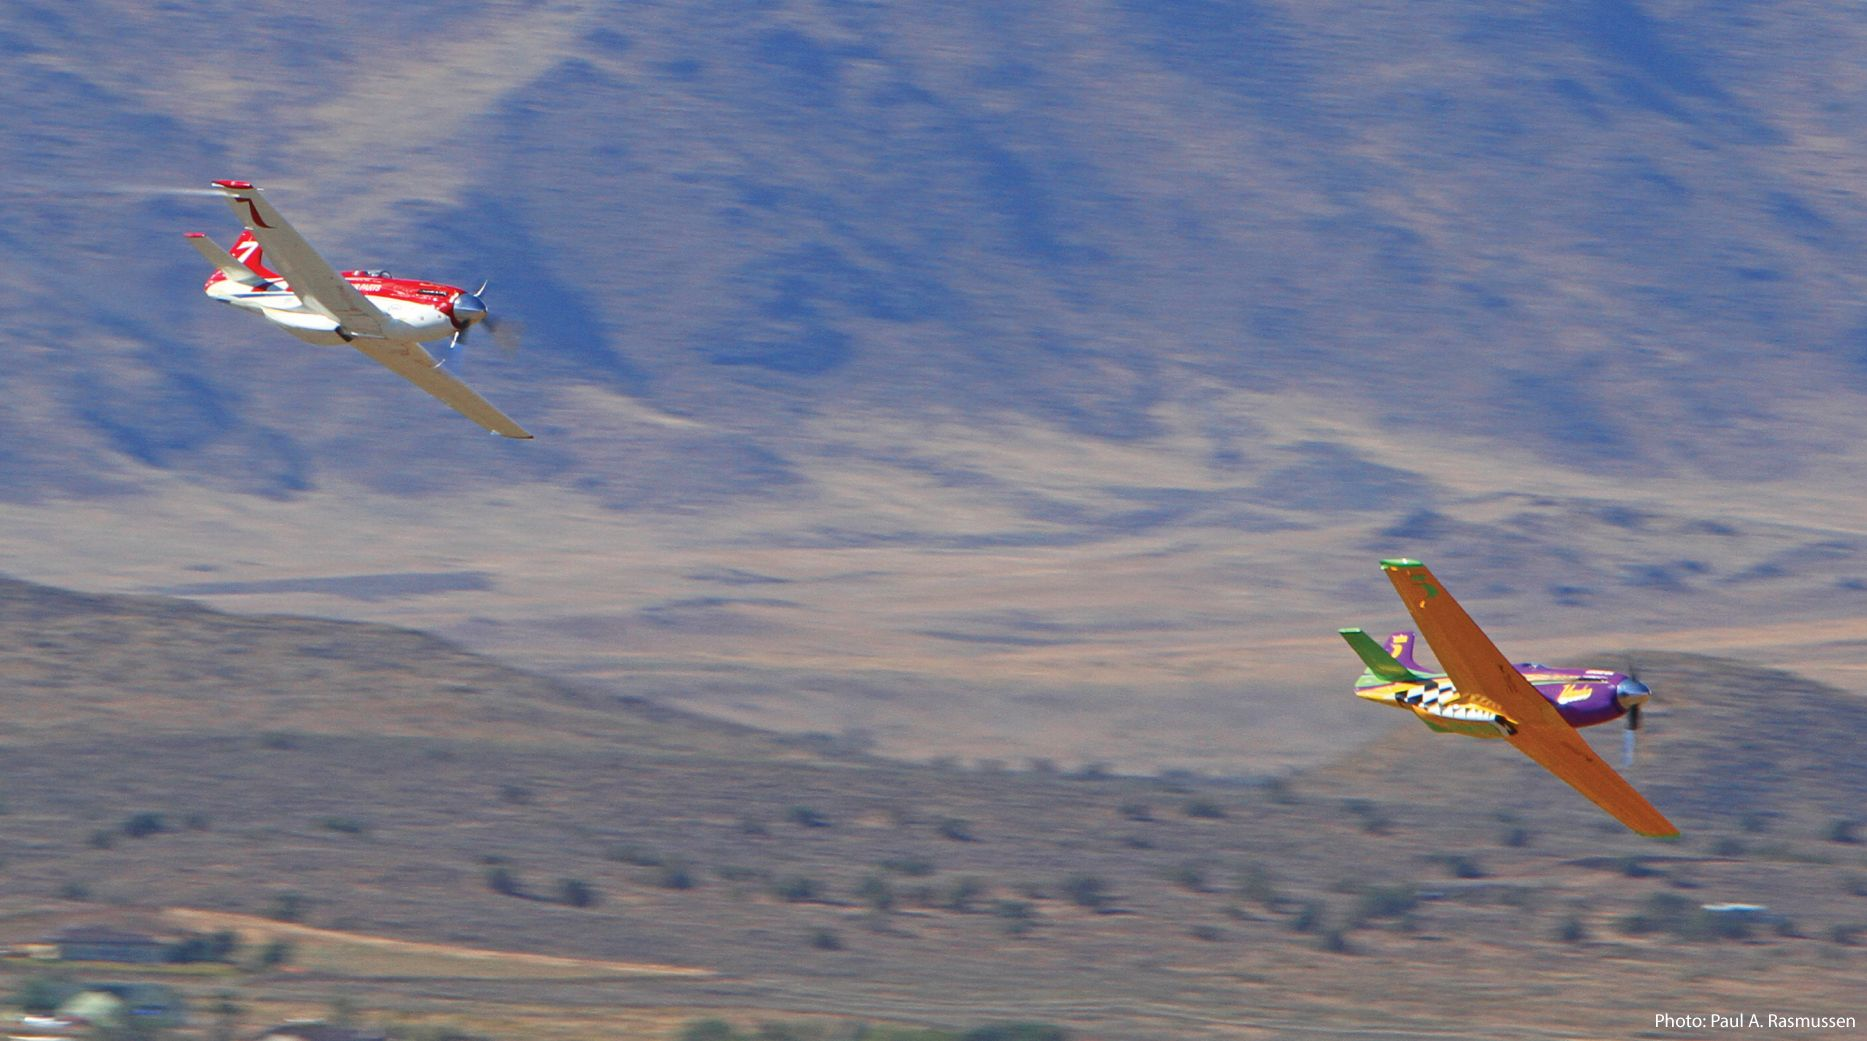 Strega and Voodoo battle at the 2015 Reno Air Races. Air